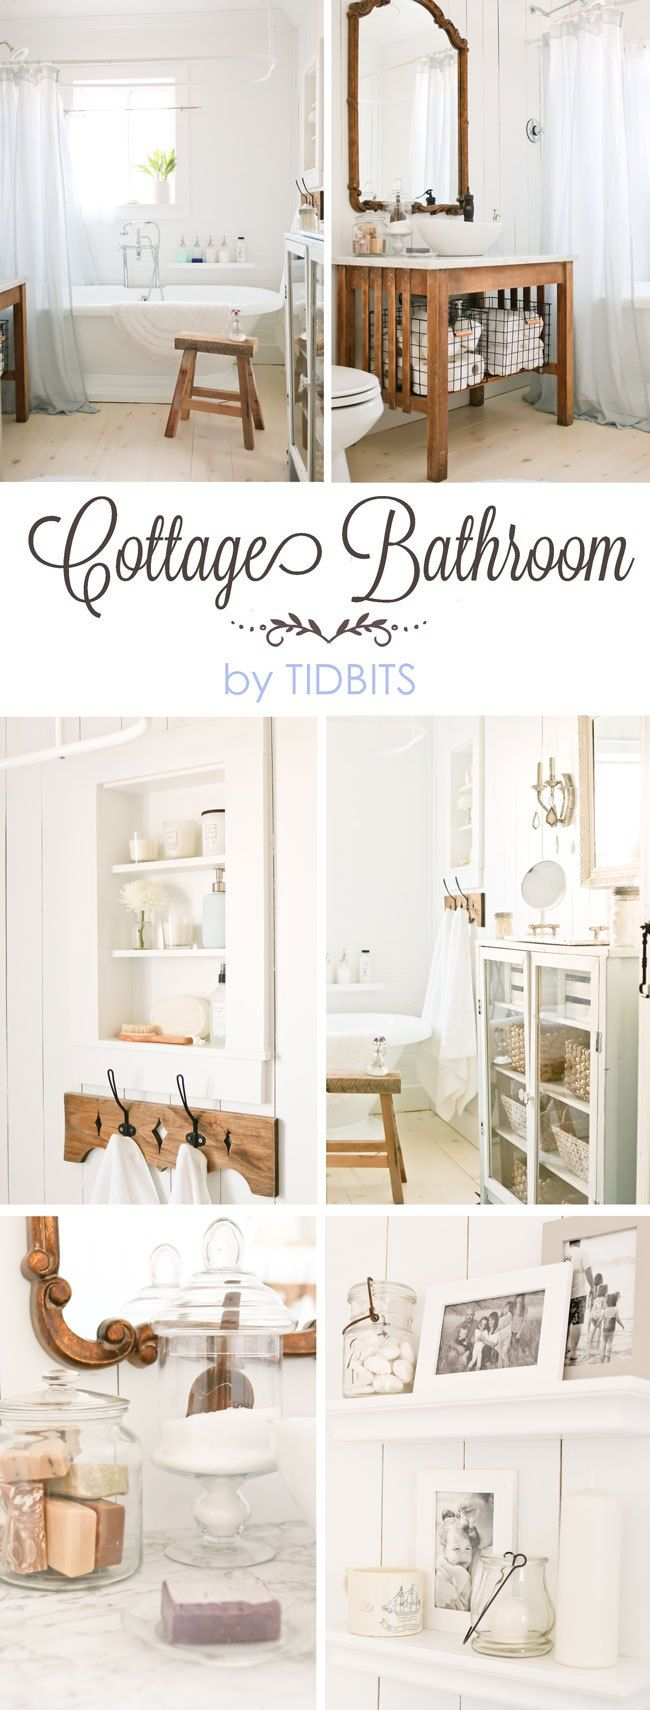 Bathroom Makeovers Country Style best 25+ cottage bathrooms ideas on pinterest | farmhouse bathroom